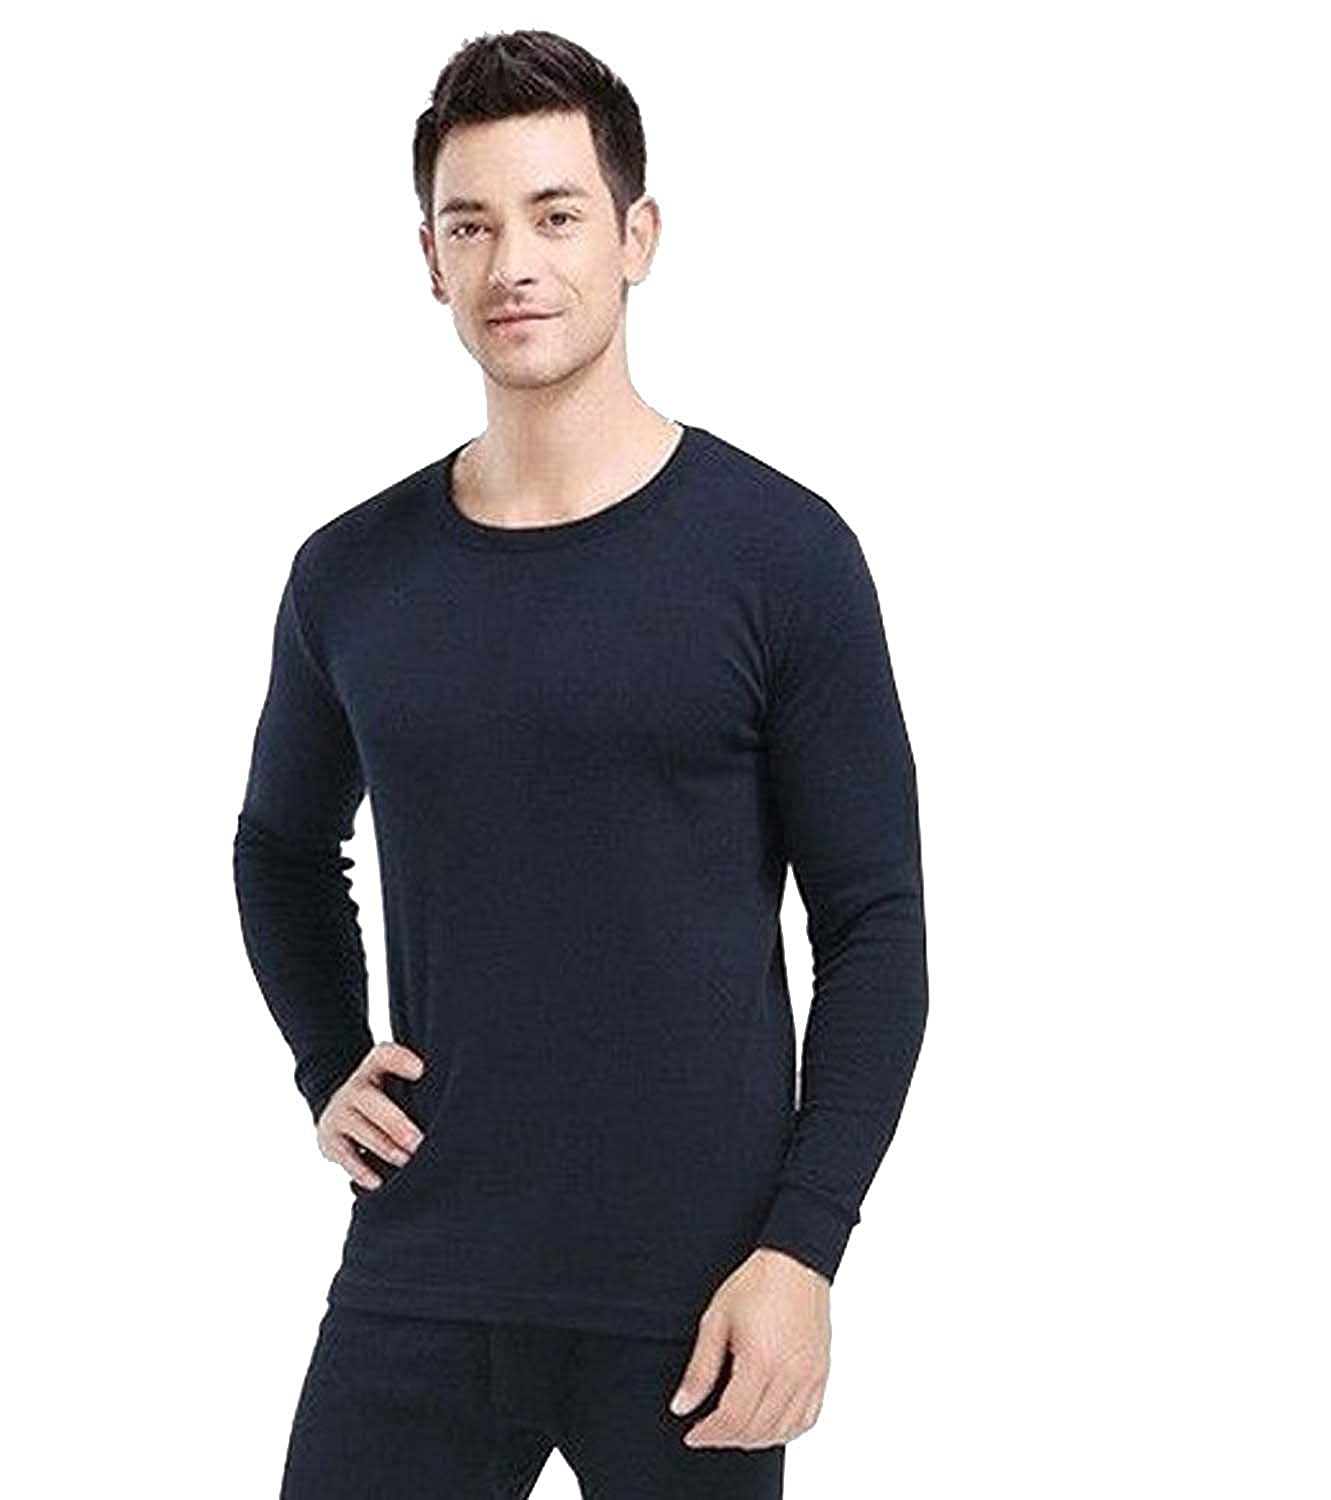 Elegance123 Men's Thermal 100% Cotton(240 Gsm) Soft Long Sleeve Fitted T-shirt Top(ref:1290)